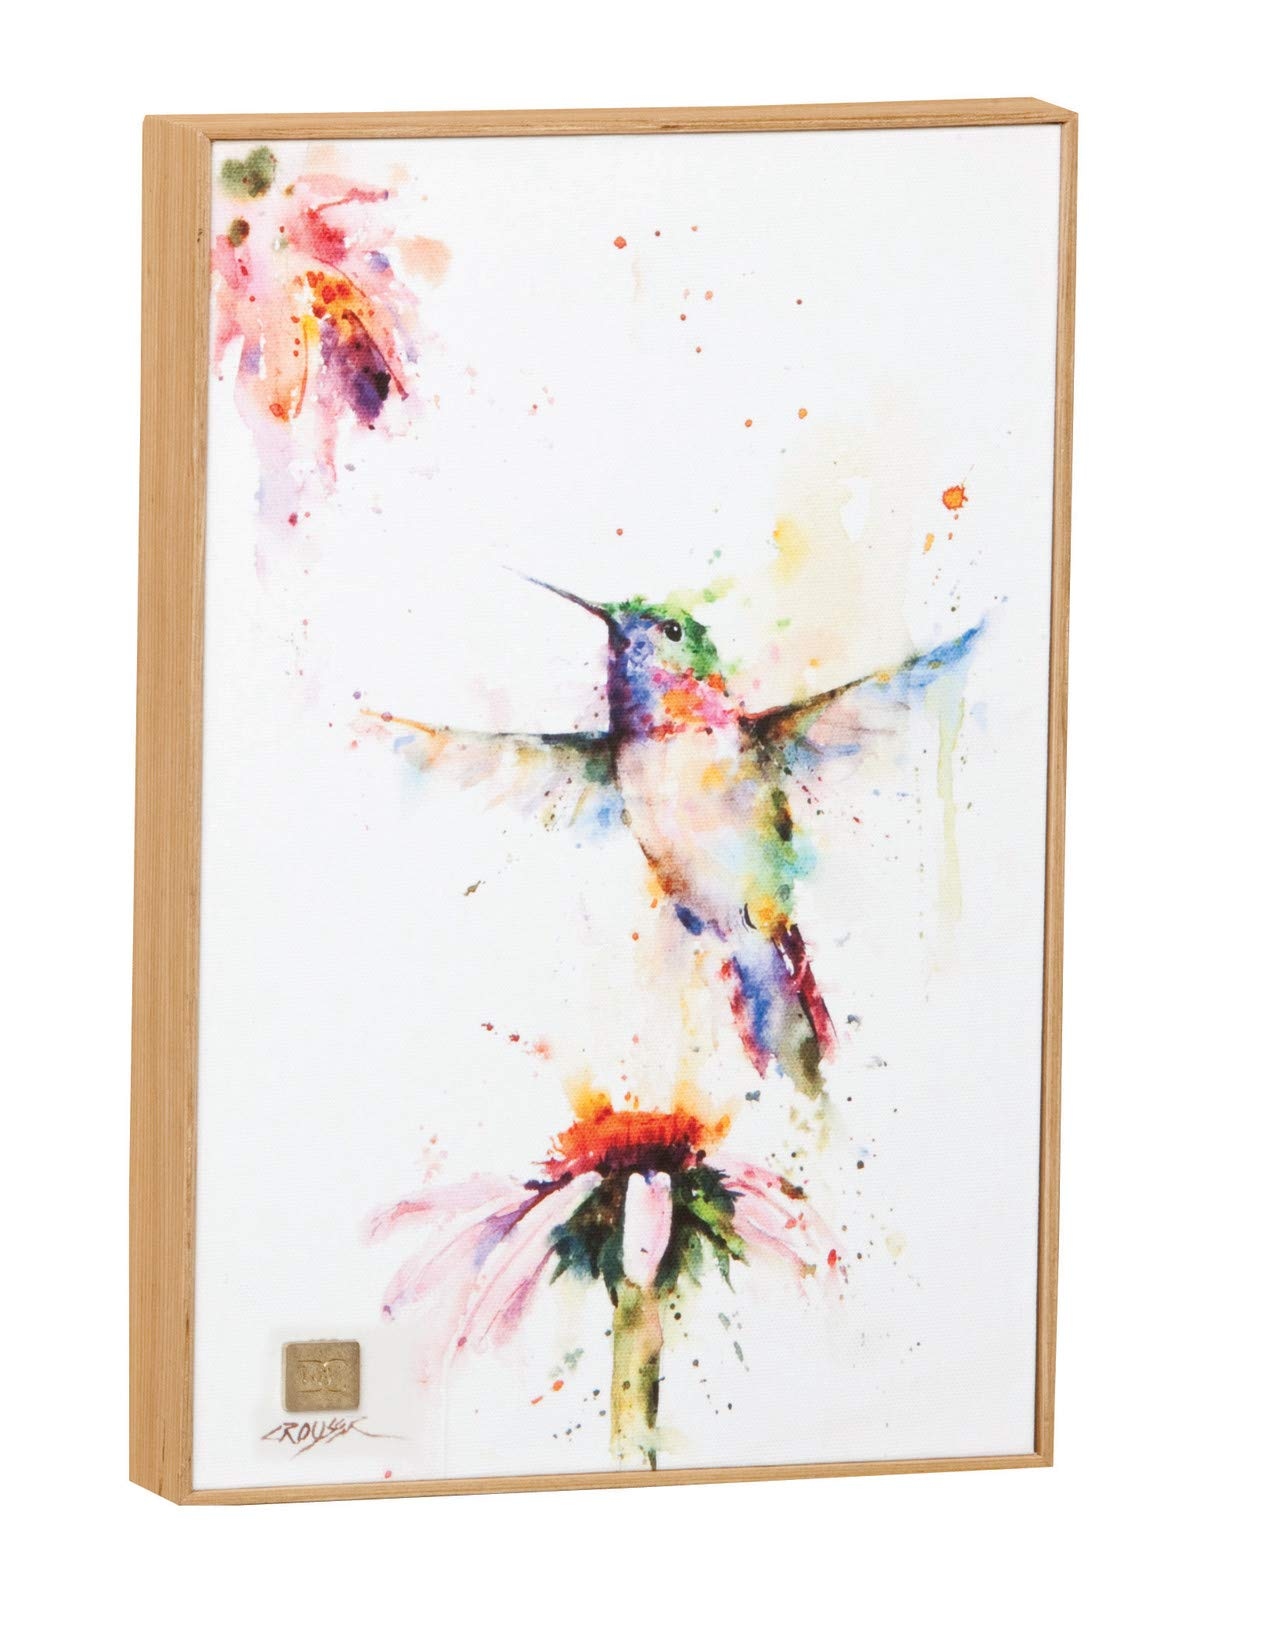 DEMDACO Big Sky Carver Peewee Hummingbird Wall Art - Measurements: 8.25W x 12.25H Made from: canvas, Solid wood, wood composite, brass Has sawtooth hanger for easy wall display - wall-art, living-room-decor, living-room - 61xJcrcDgaL -